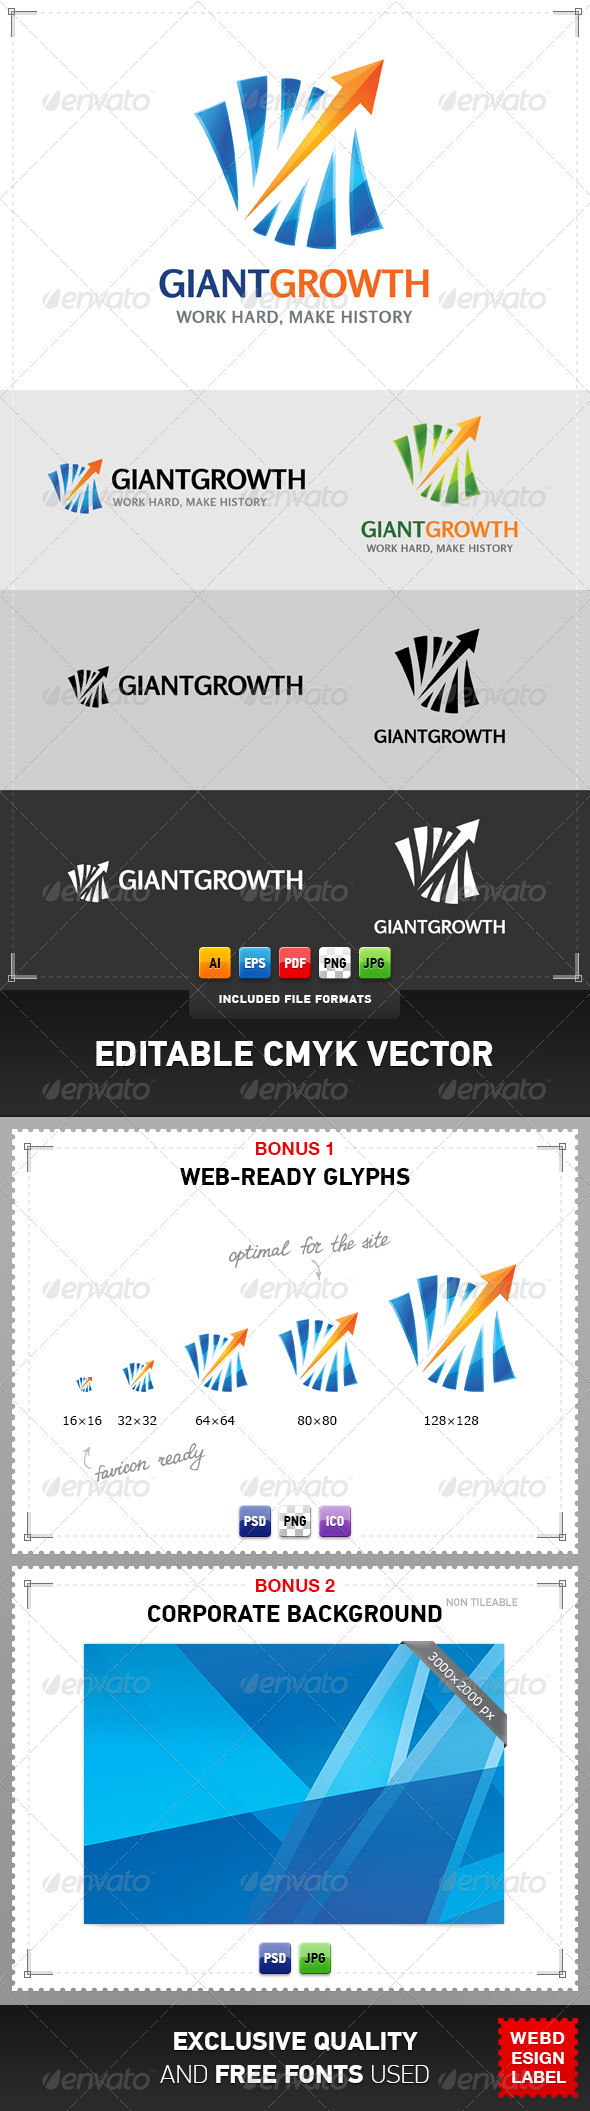 Giant Growth Logo - Symbols Logo Templates